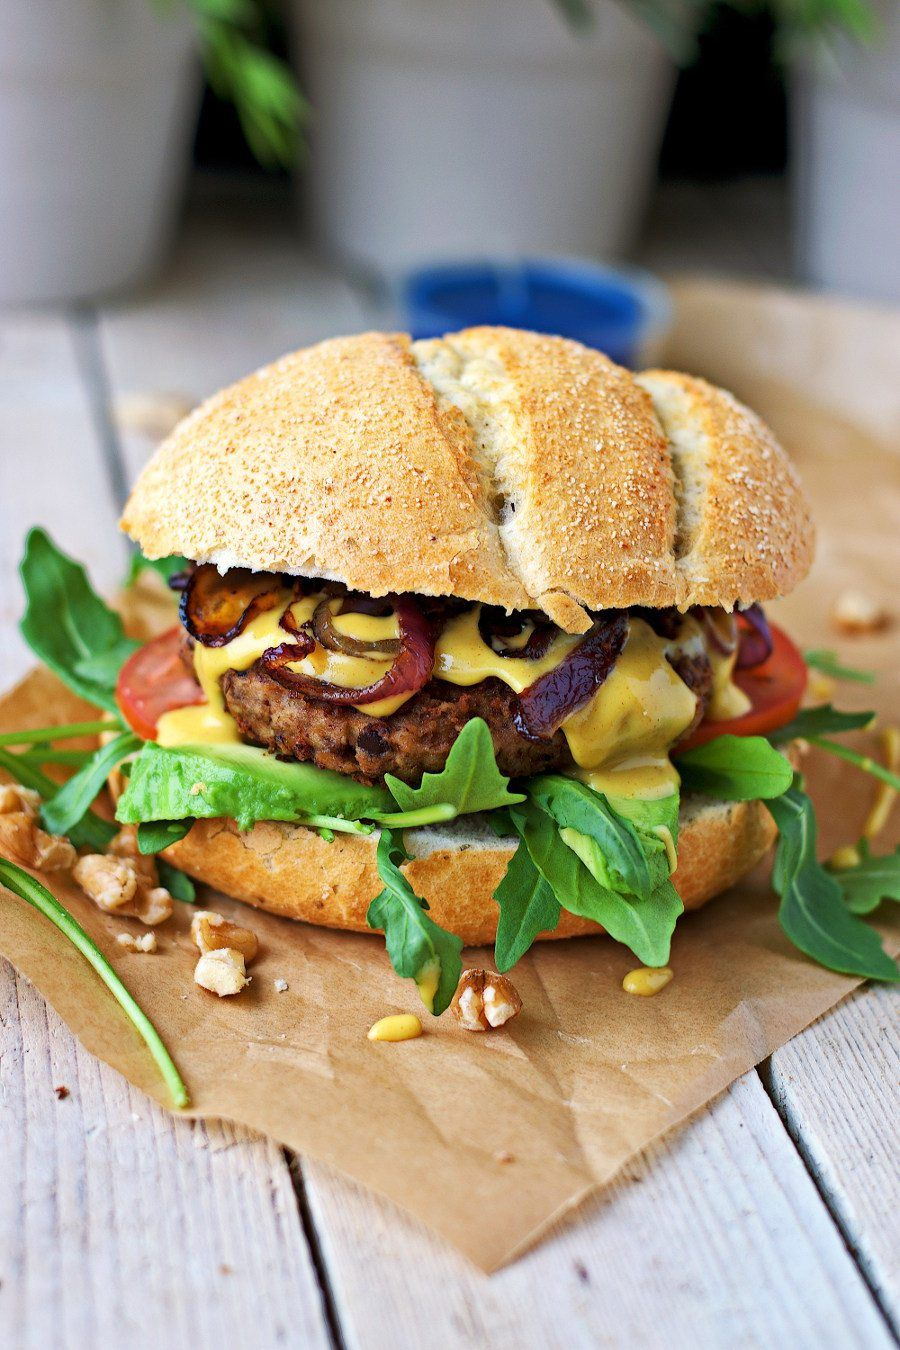 Vegan Lentil Burger It takes only four ingredients to make the most delicious and out of this world Vegan Lentil Burger. It's perfect with the sweet and spicy flavors of the creamy Mustard Sauce with Maple for an easy and satisfying dinner or lunch.